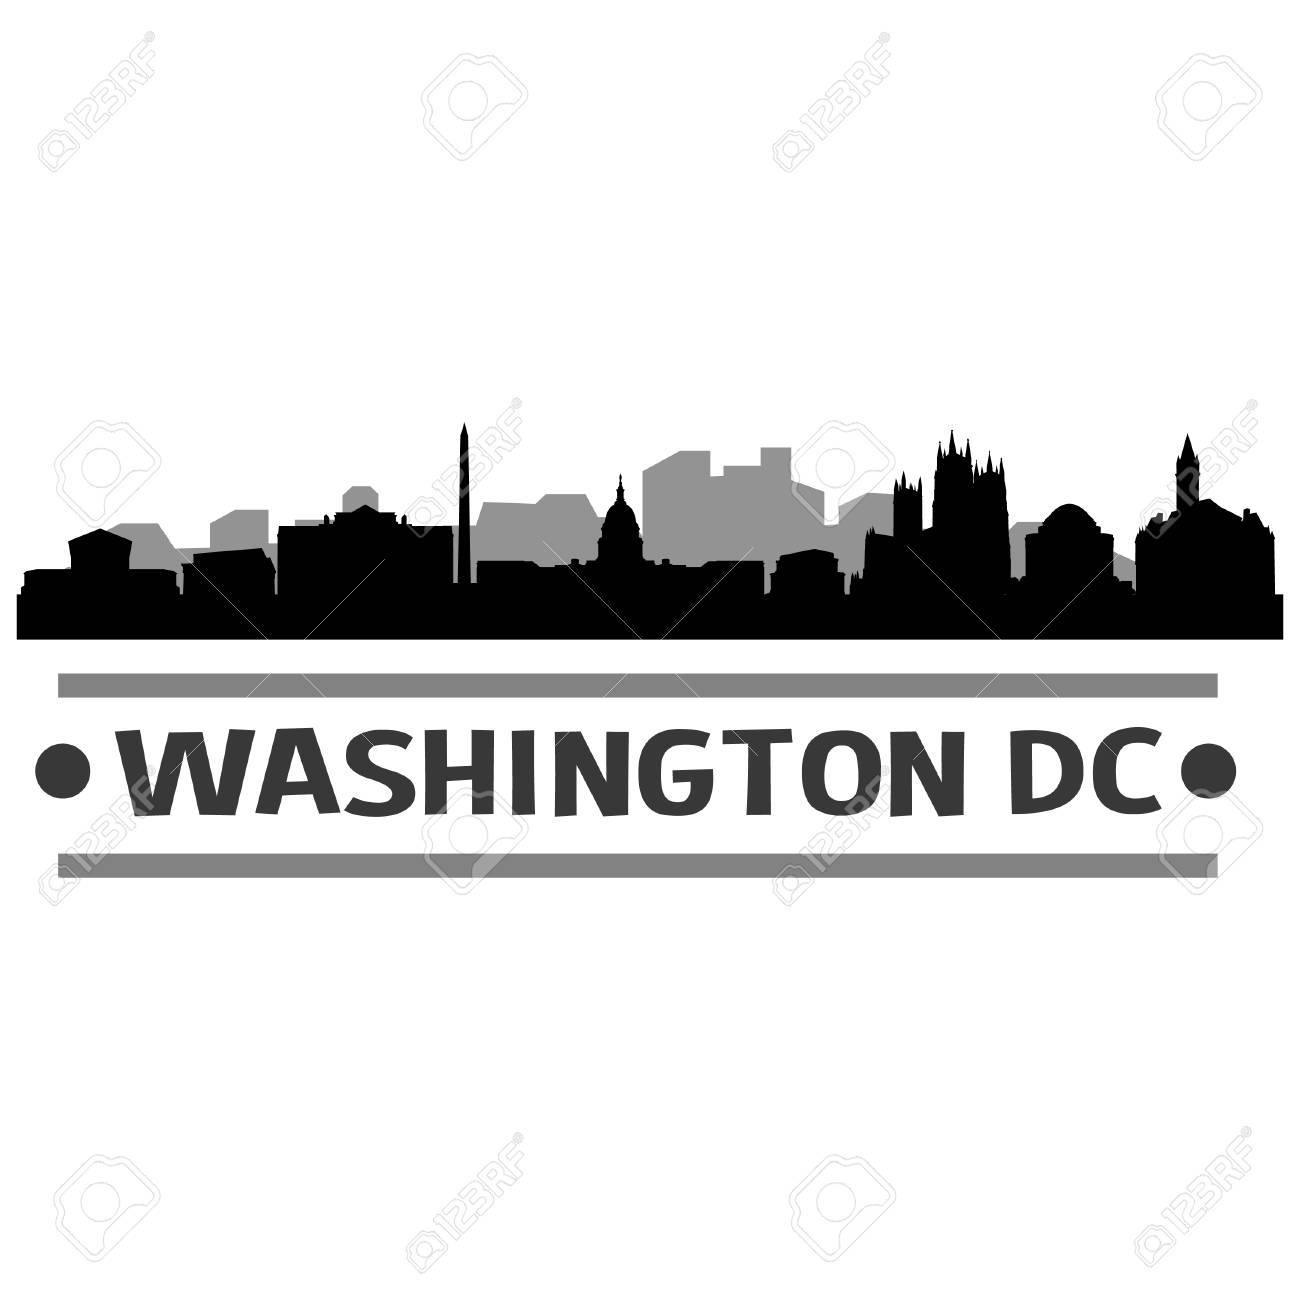 Washington dc skyline clipart 1 » Clipart Portal.